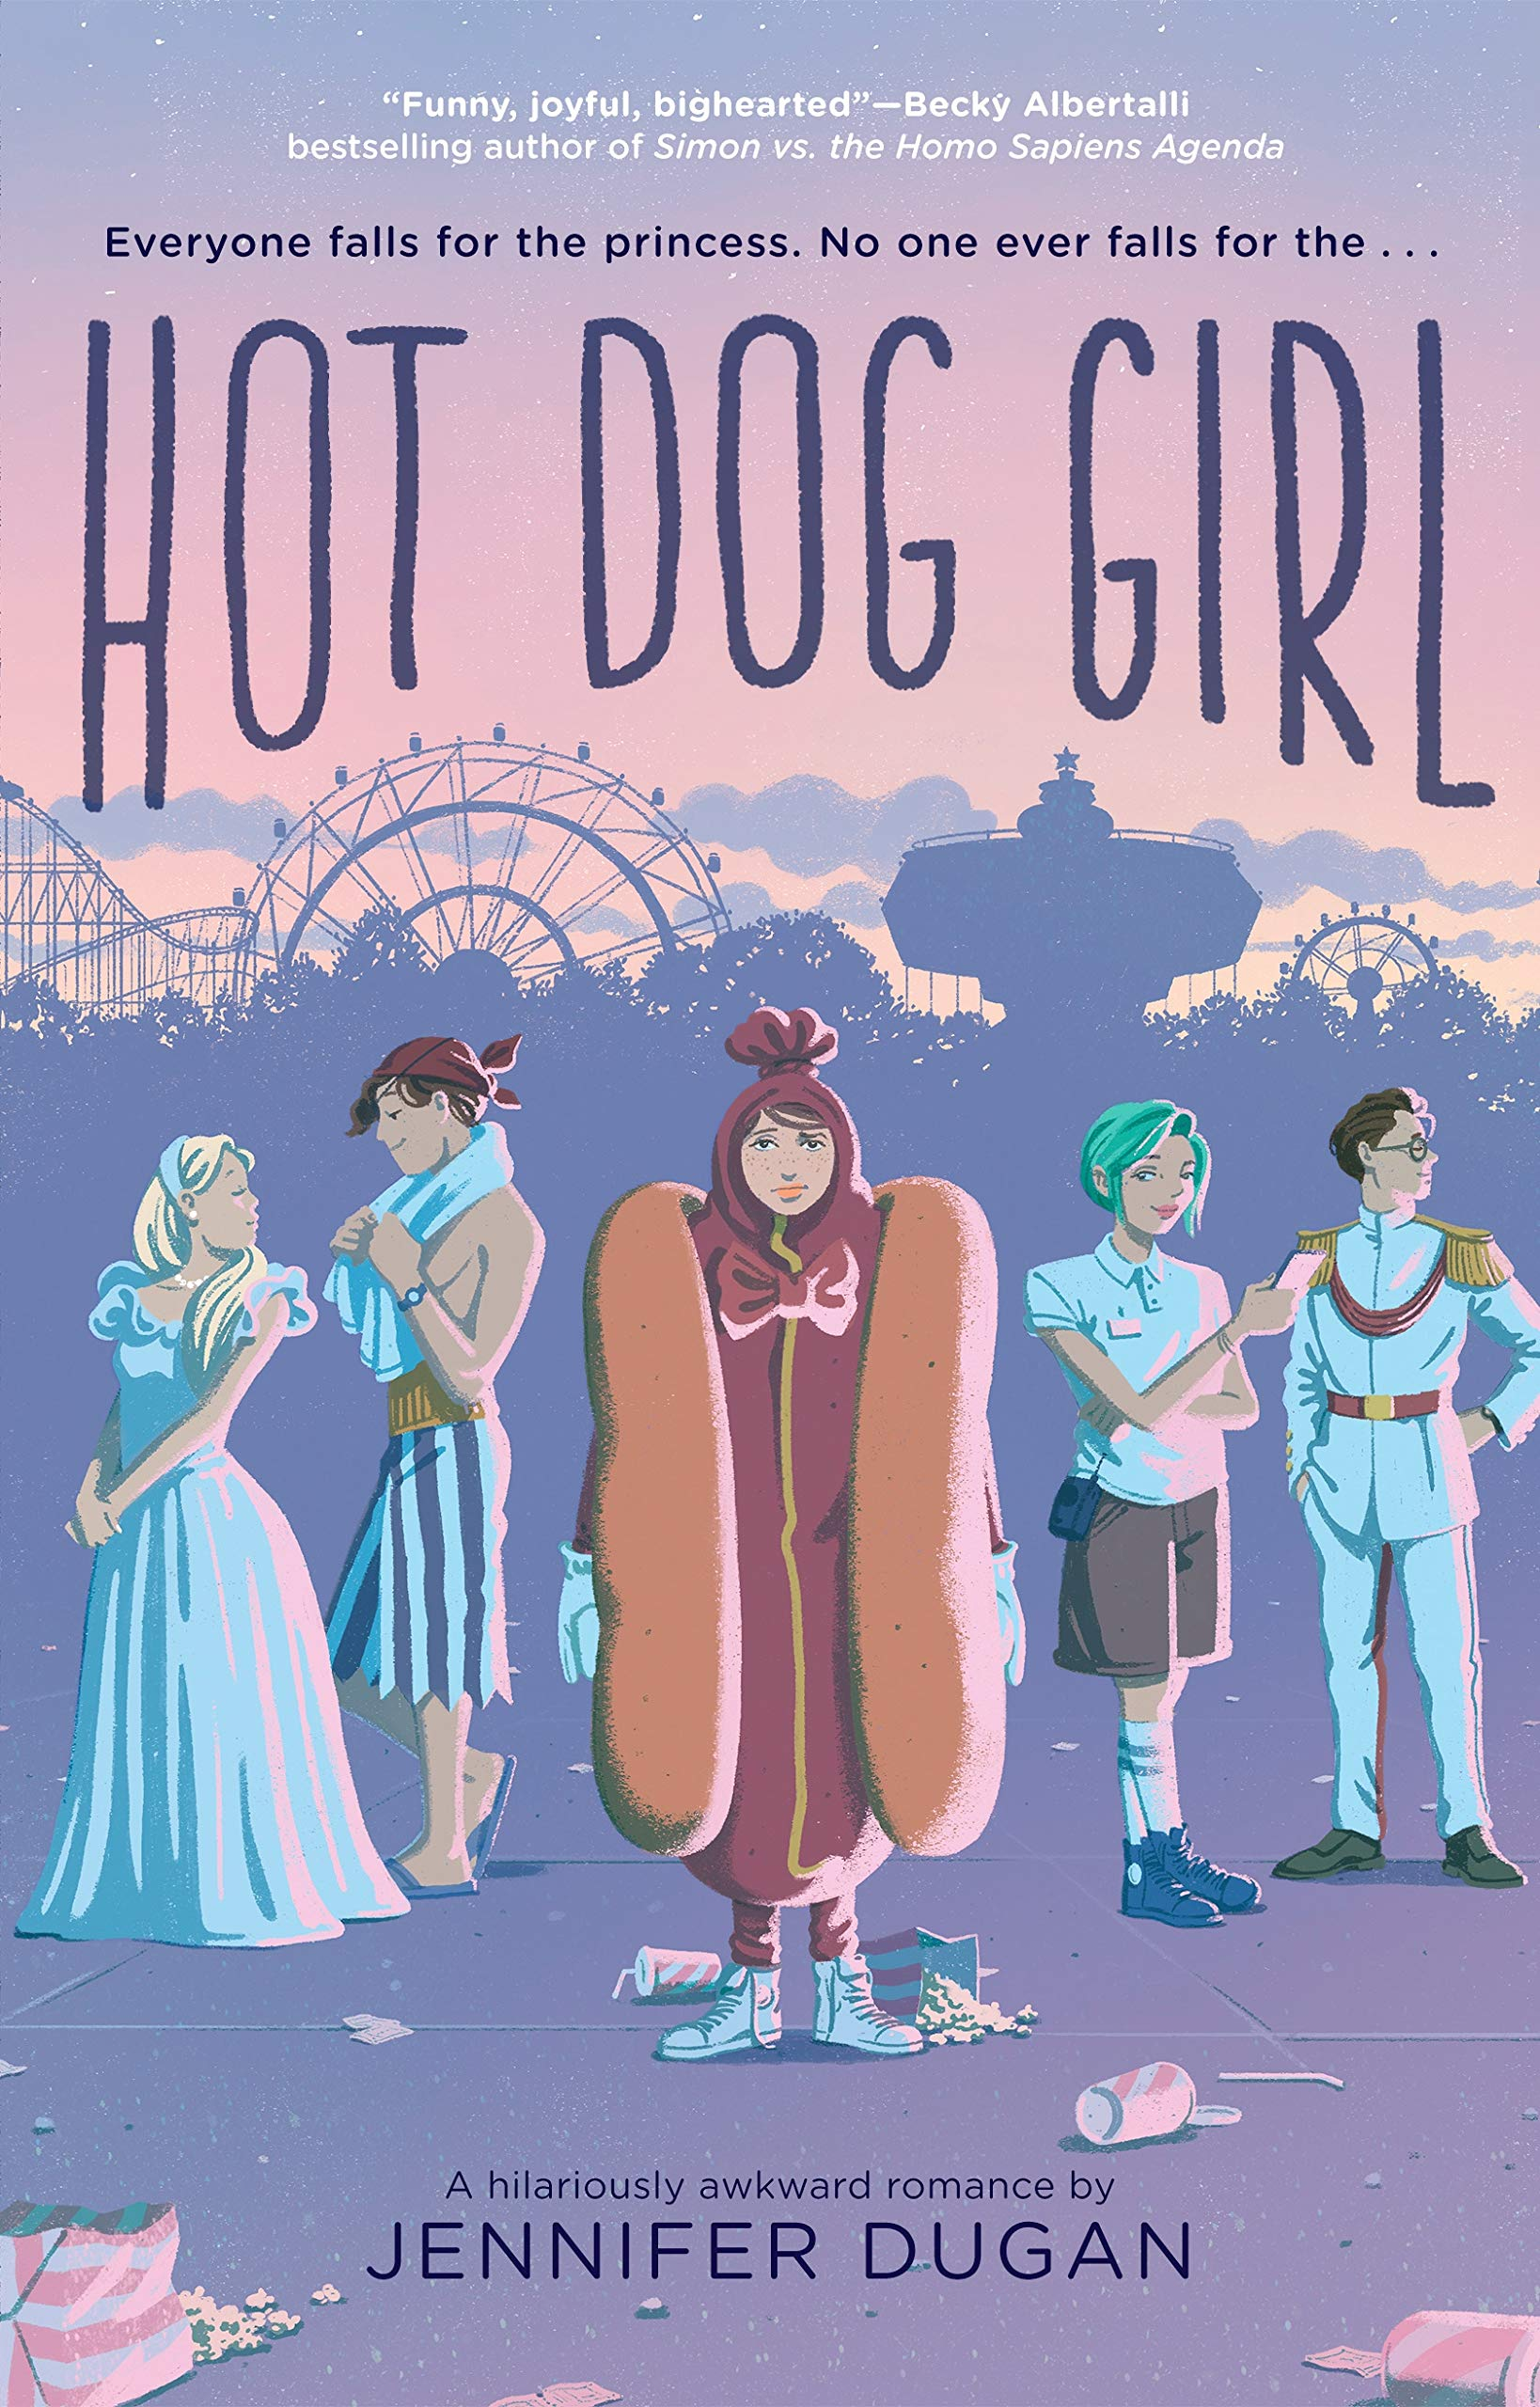 Amazon.com: Hot Dog Girl (9780525516255): Dugan, Jennifer: Books